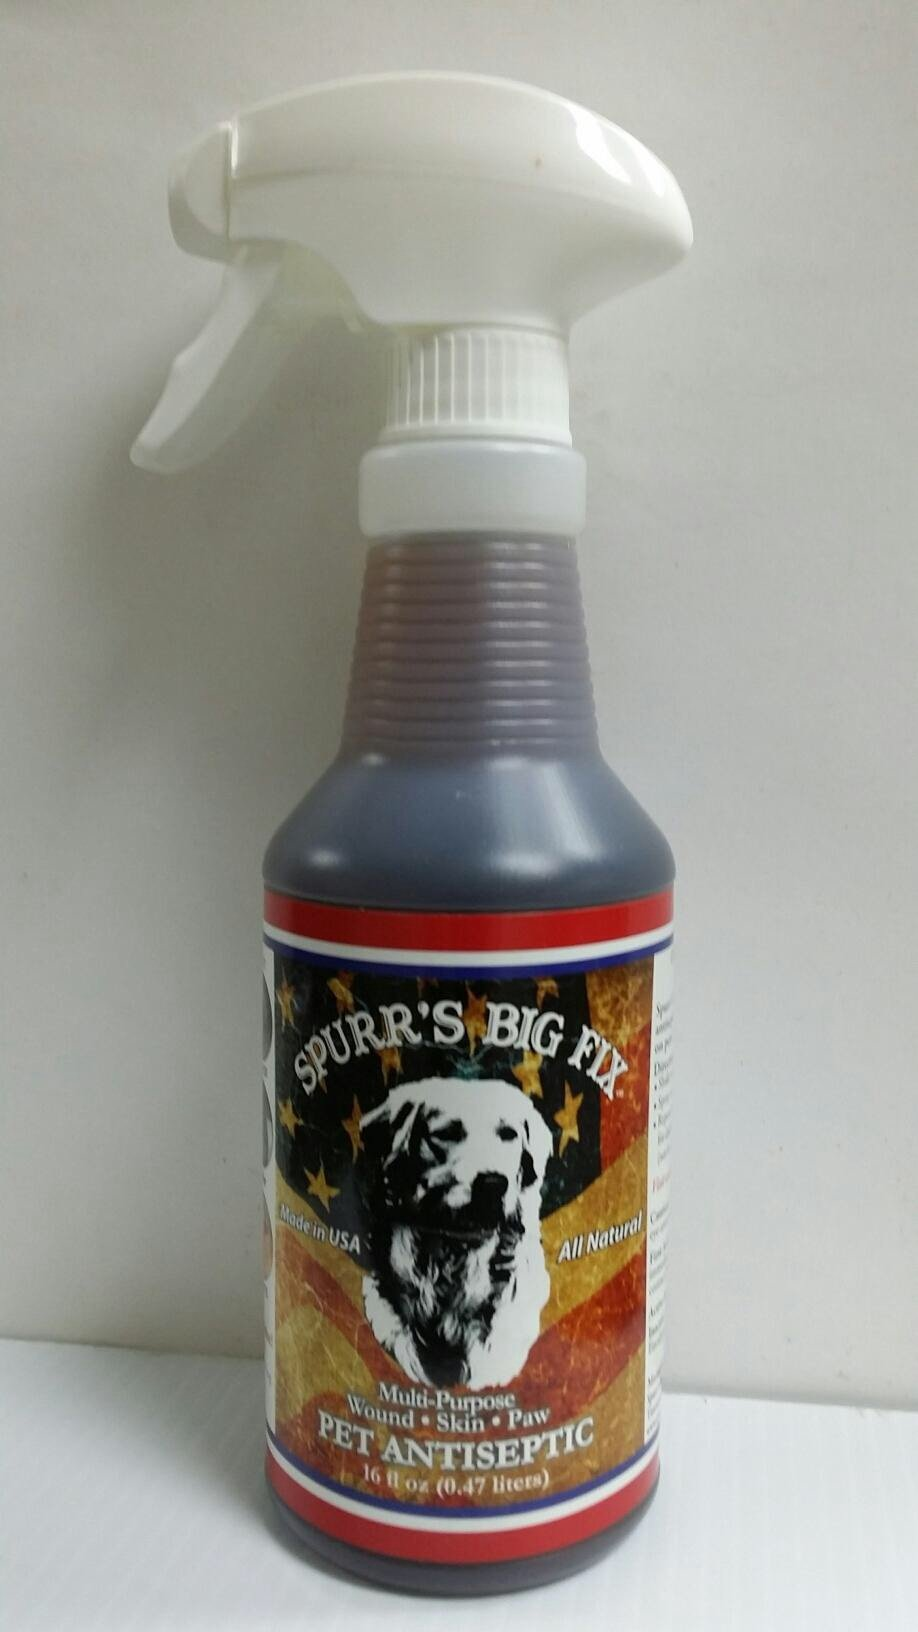 Spurr's Big Fix 16 Oz ''Pet Antiseptic''